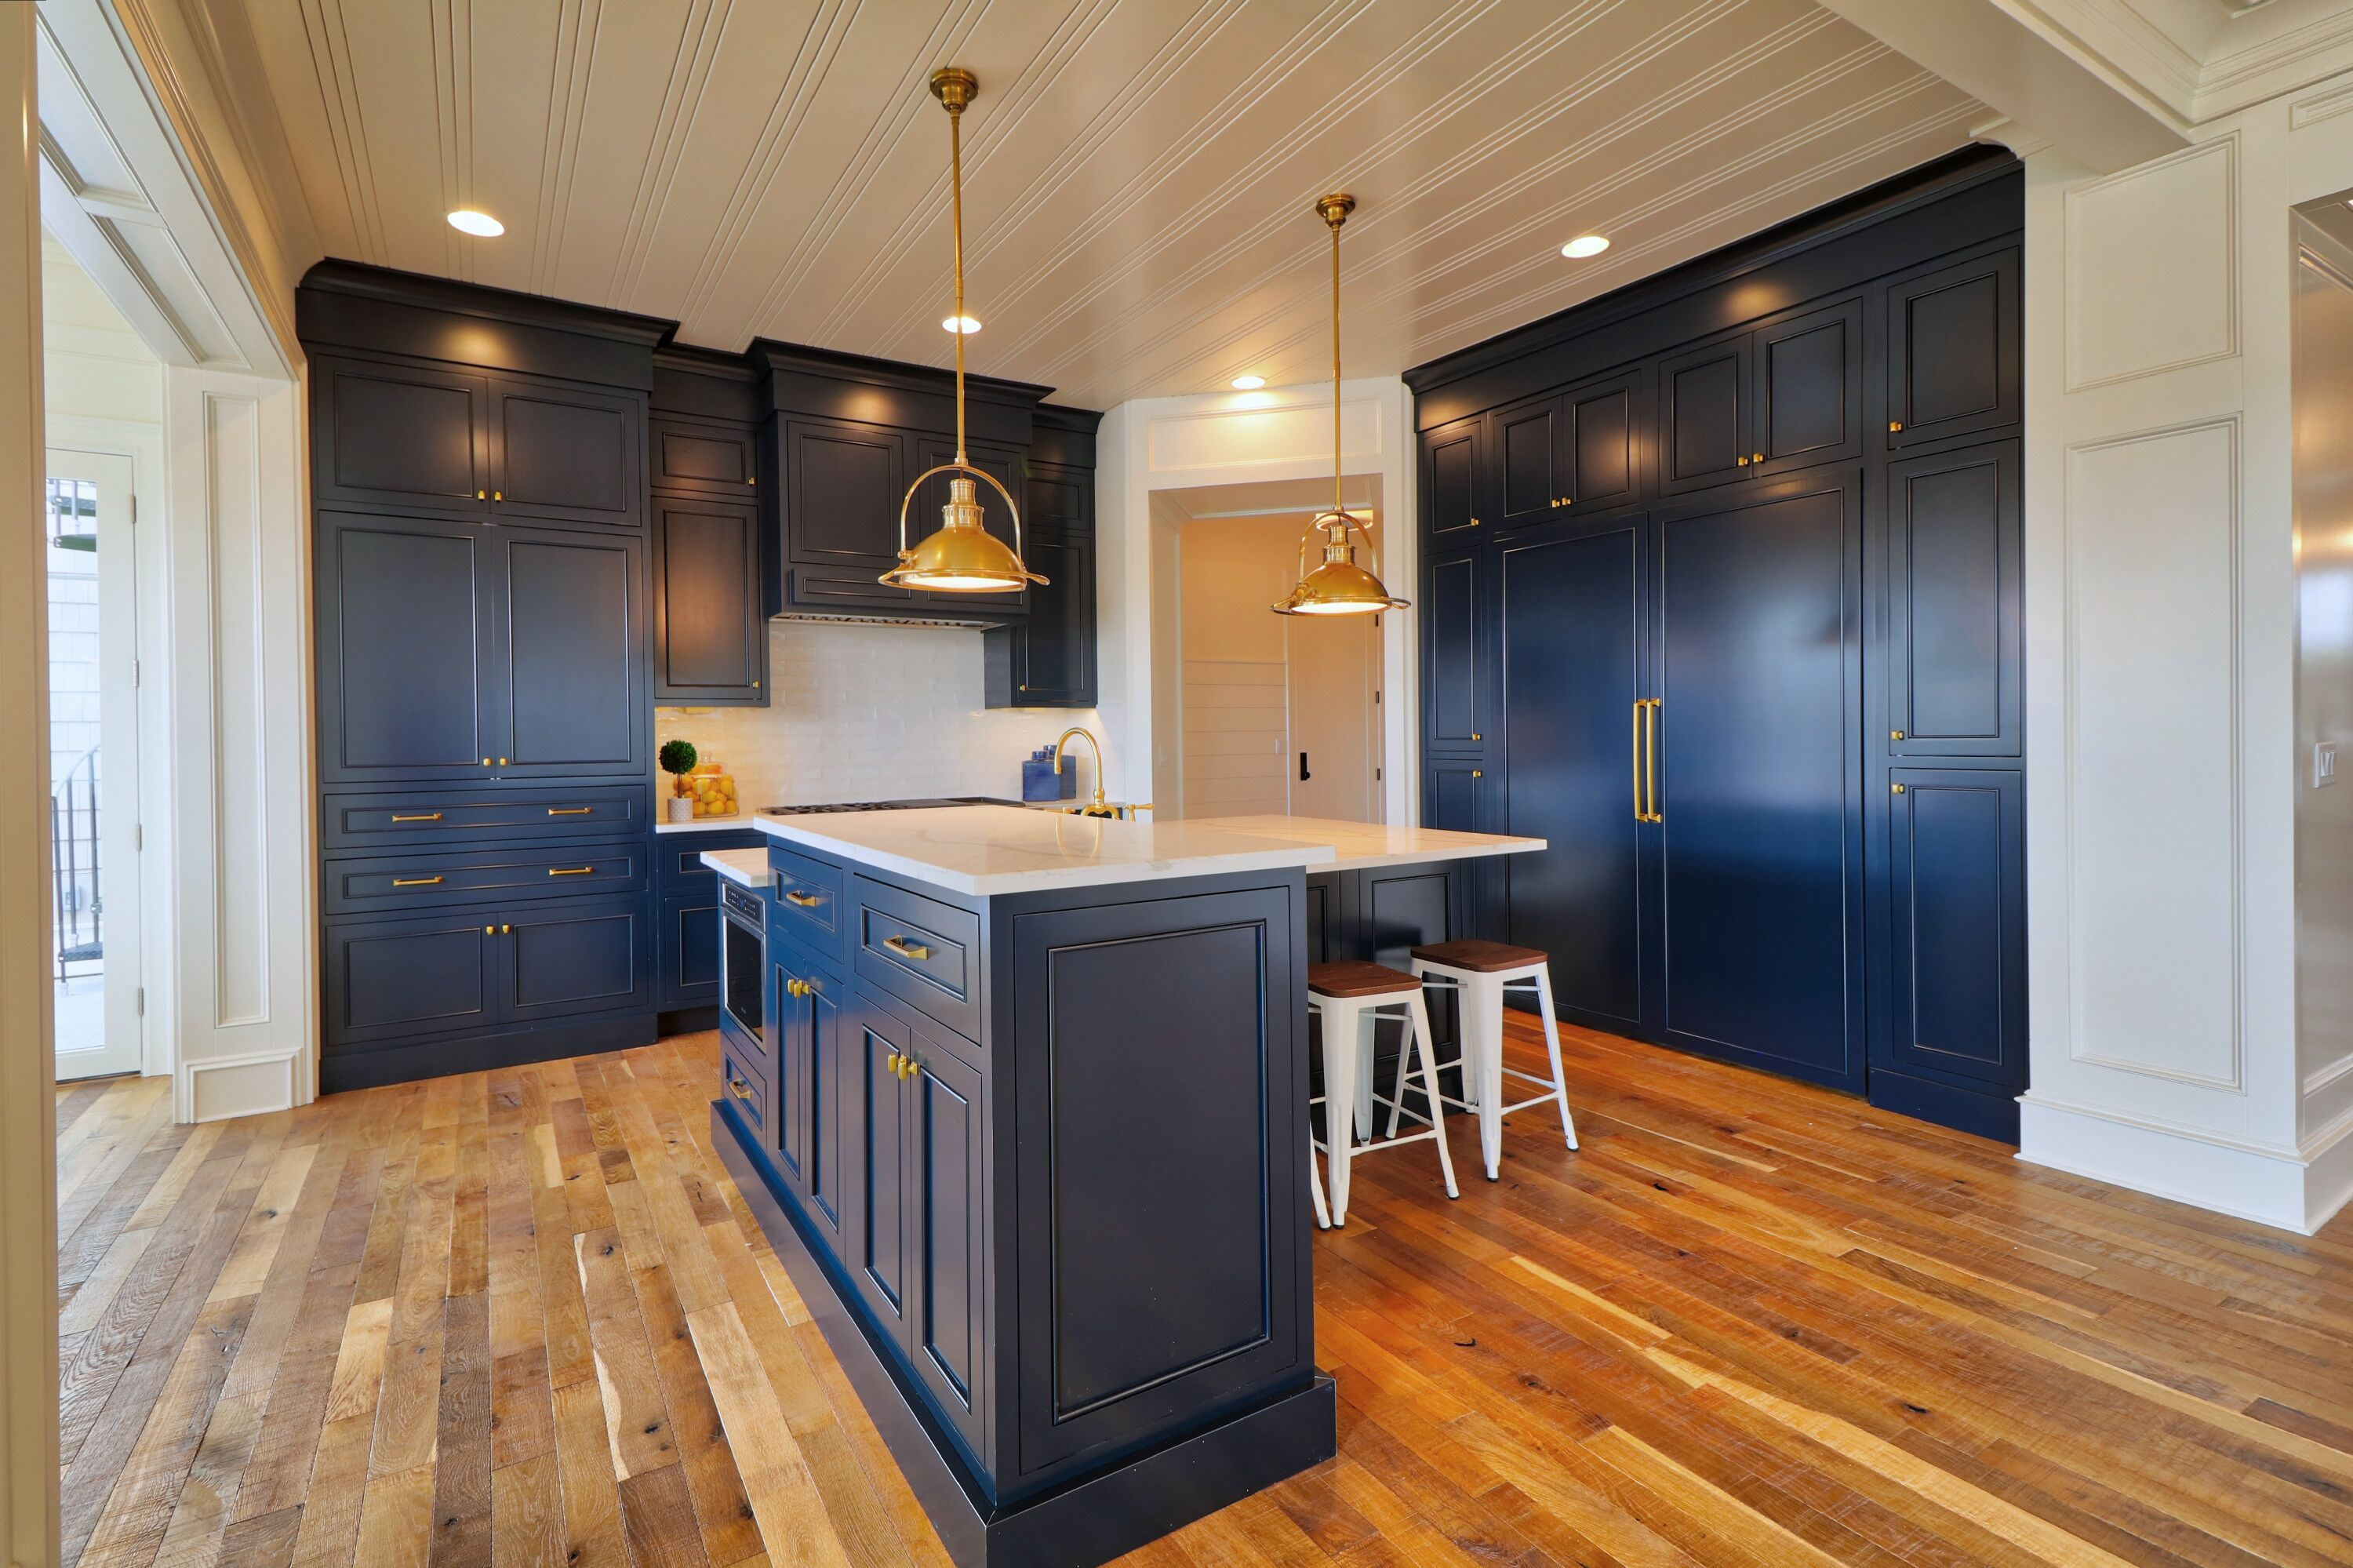 The Dark Blue Cupboards Contrasted Against The Light Hardwood Flooring Is What Makes This Design So Uniq Blue Cupboards Modern Kitchen Light Hardwood